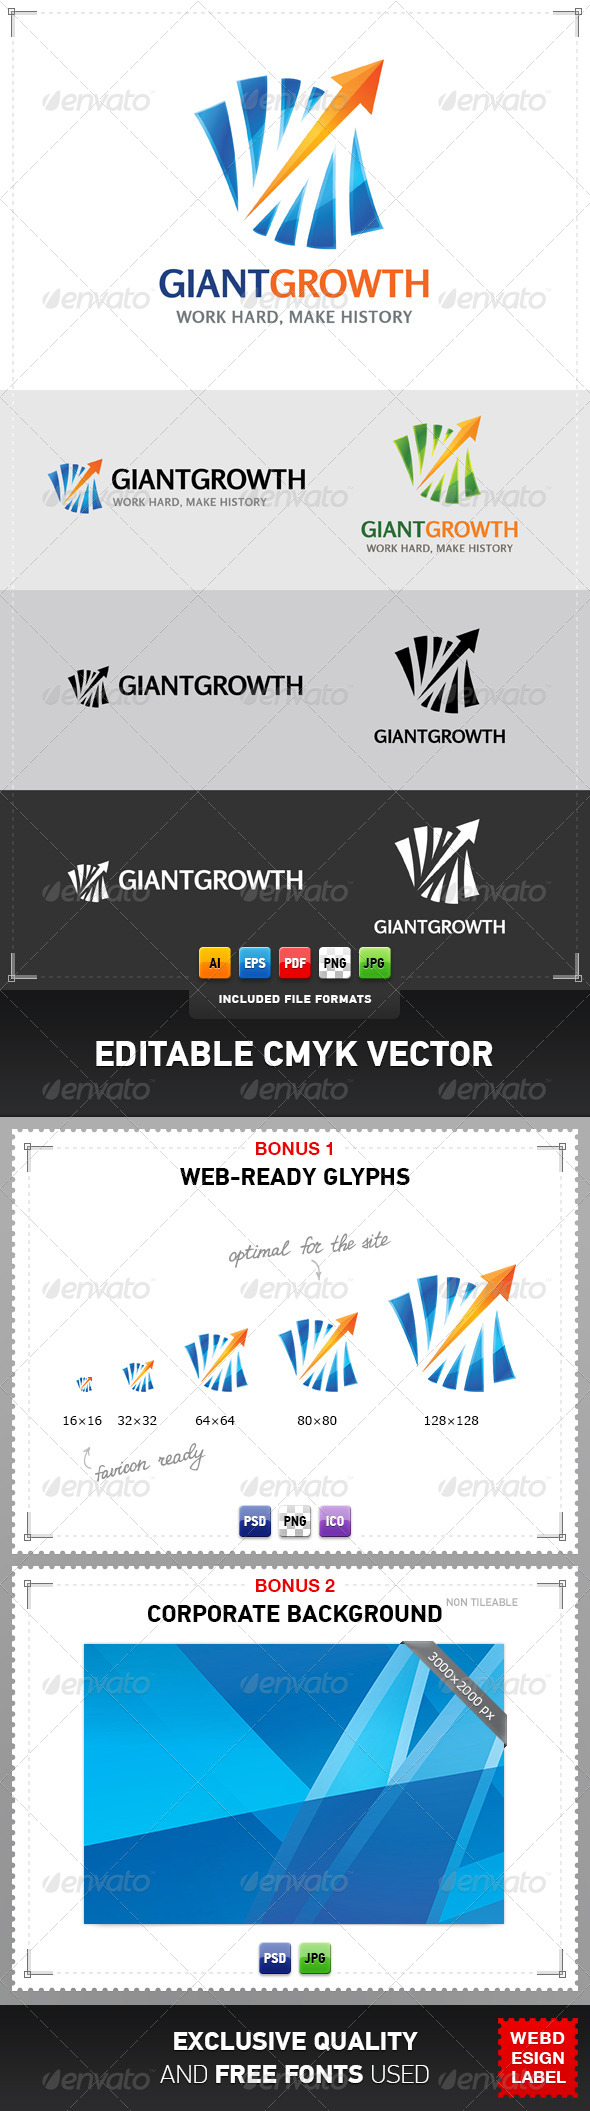 GraphicRiver Giant Growth Logo 4797257